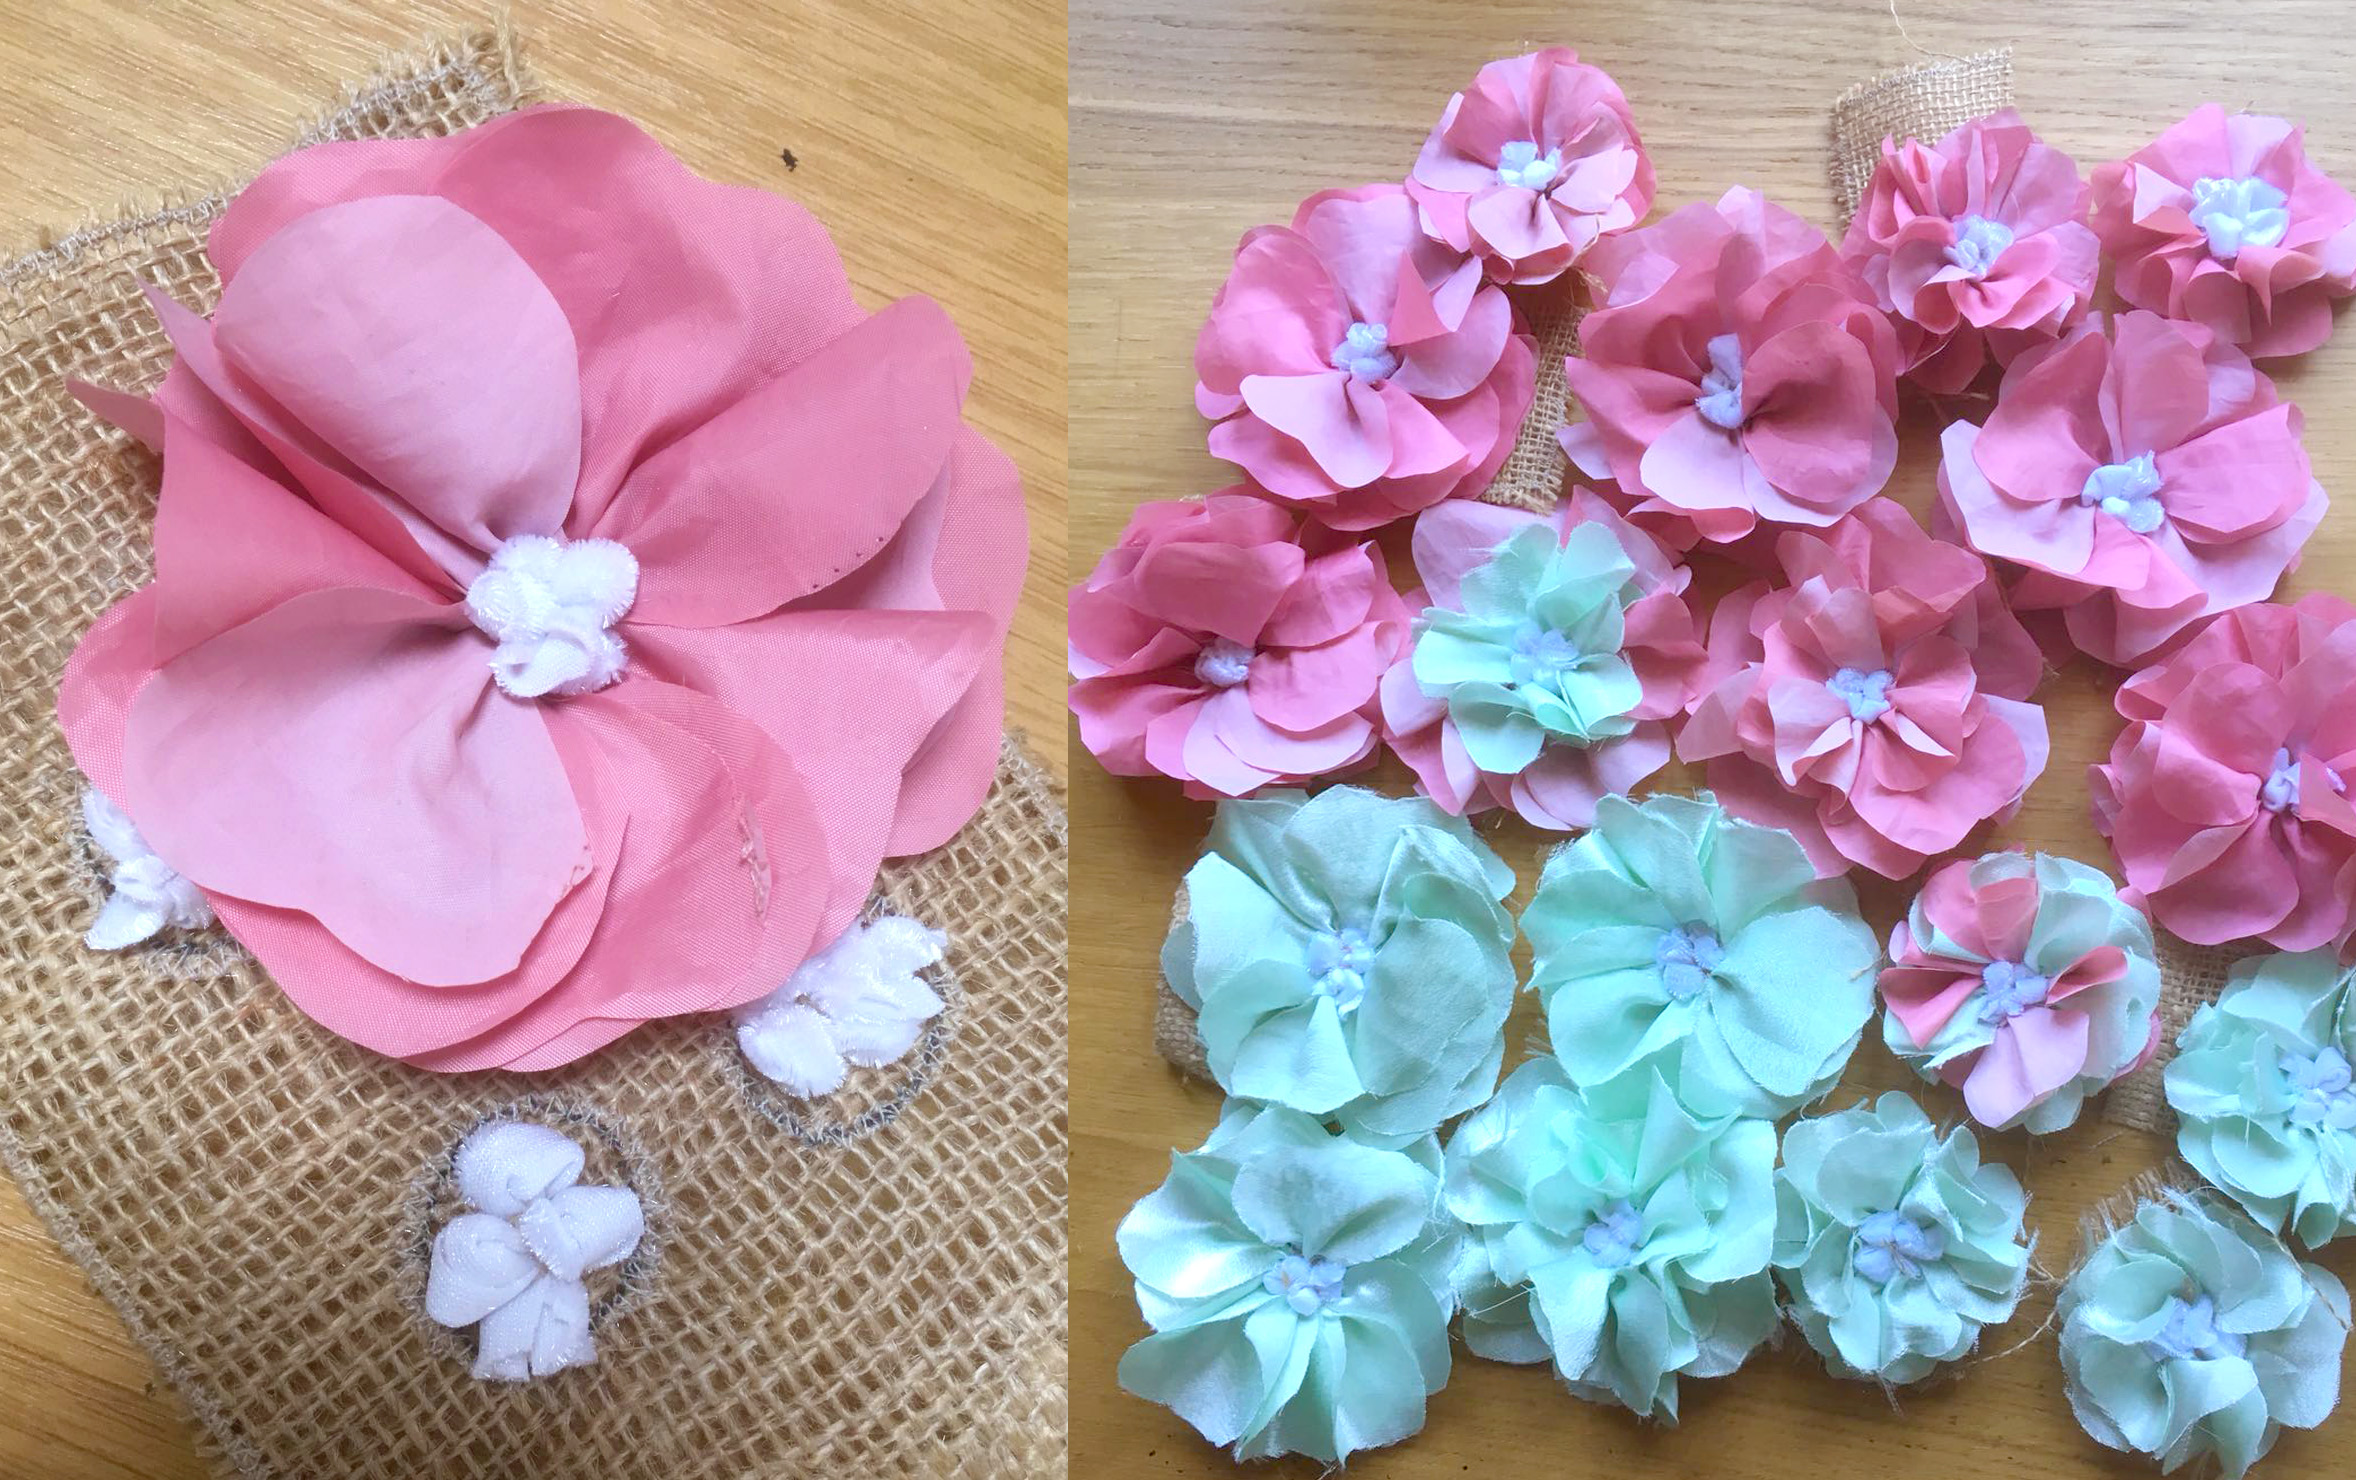 Rag Rug Shaped Flowers in pink and blue on hessian with loopy and shaggy rag rugging